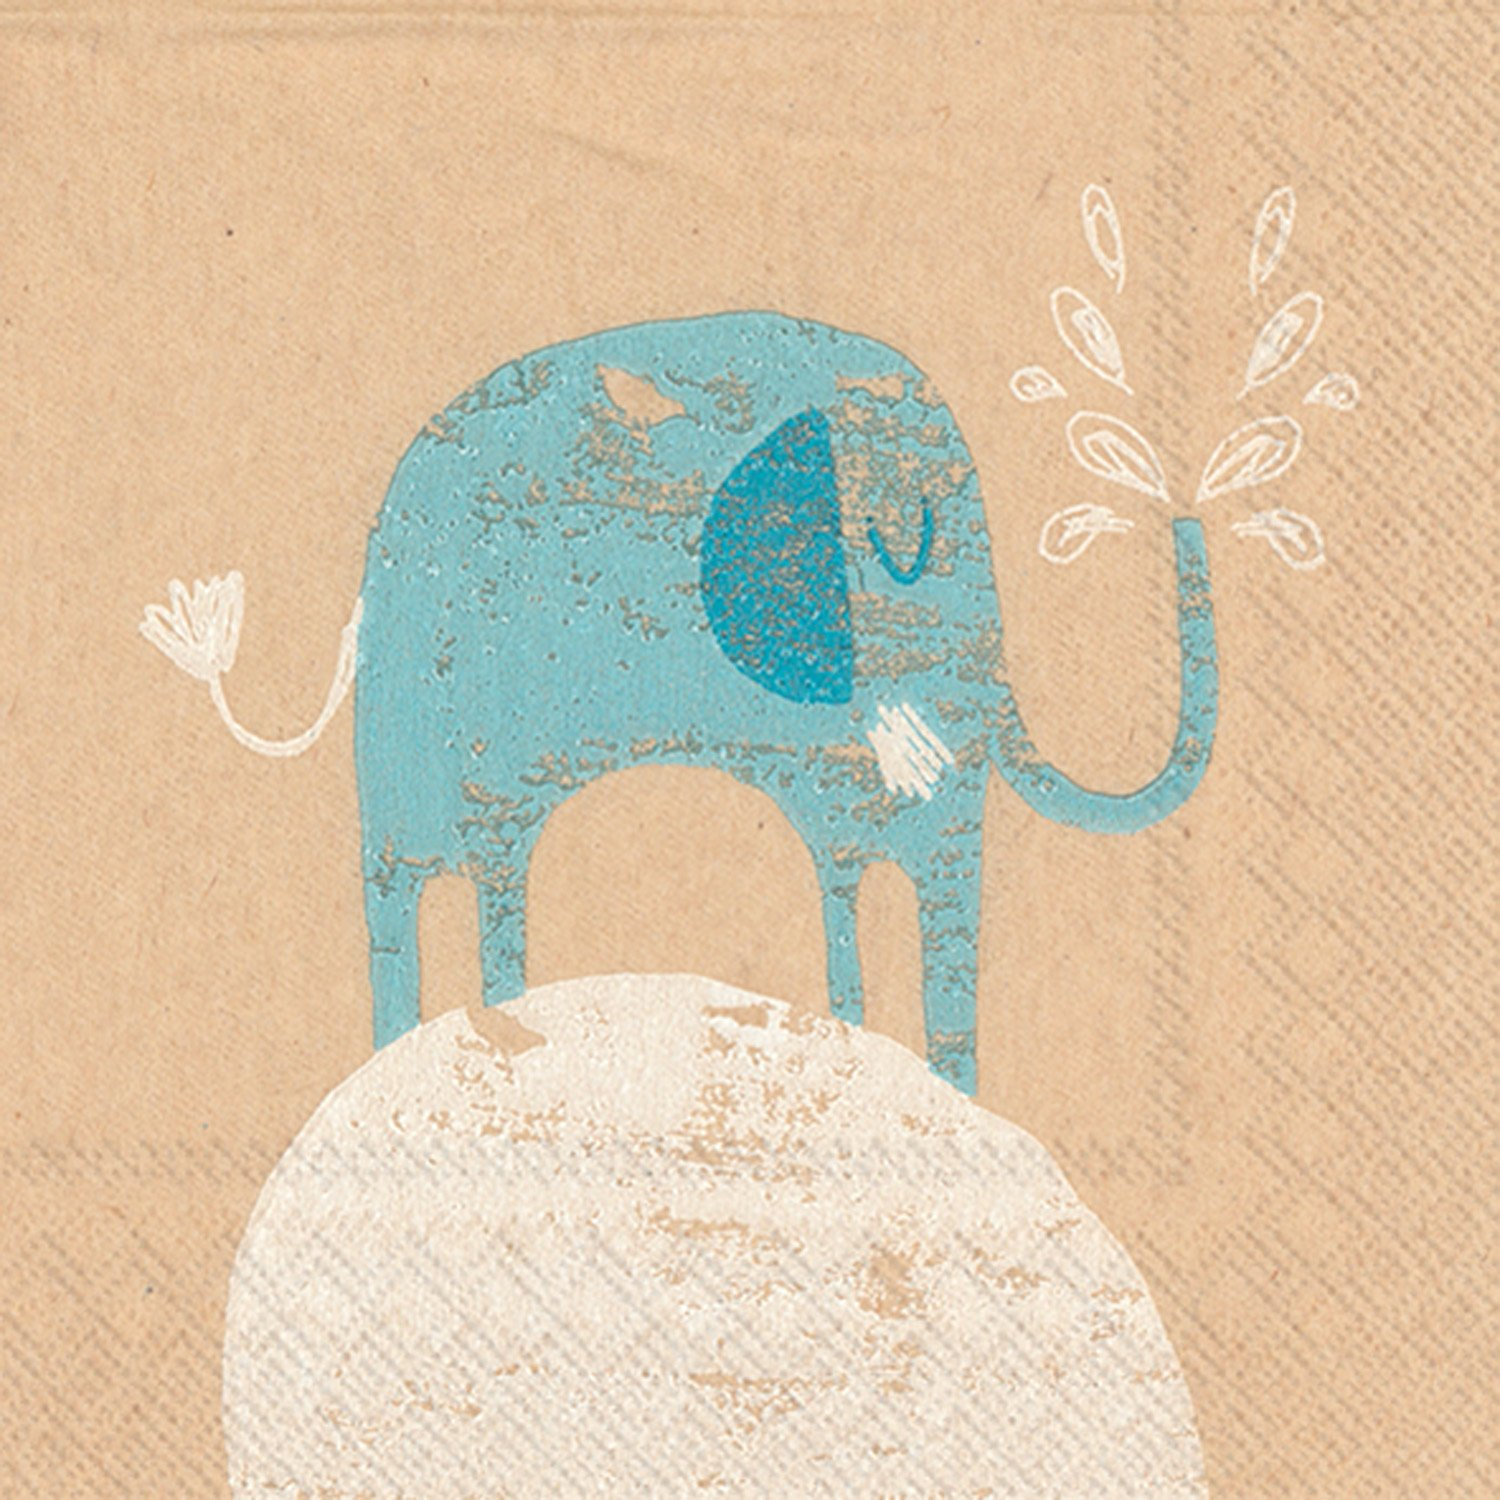 Celebrate the Home Brown Paper 3-Ply Paper Cocktail Napkins, Little Elephant, 20 Count